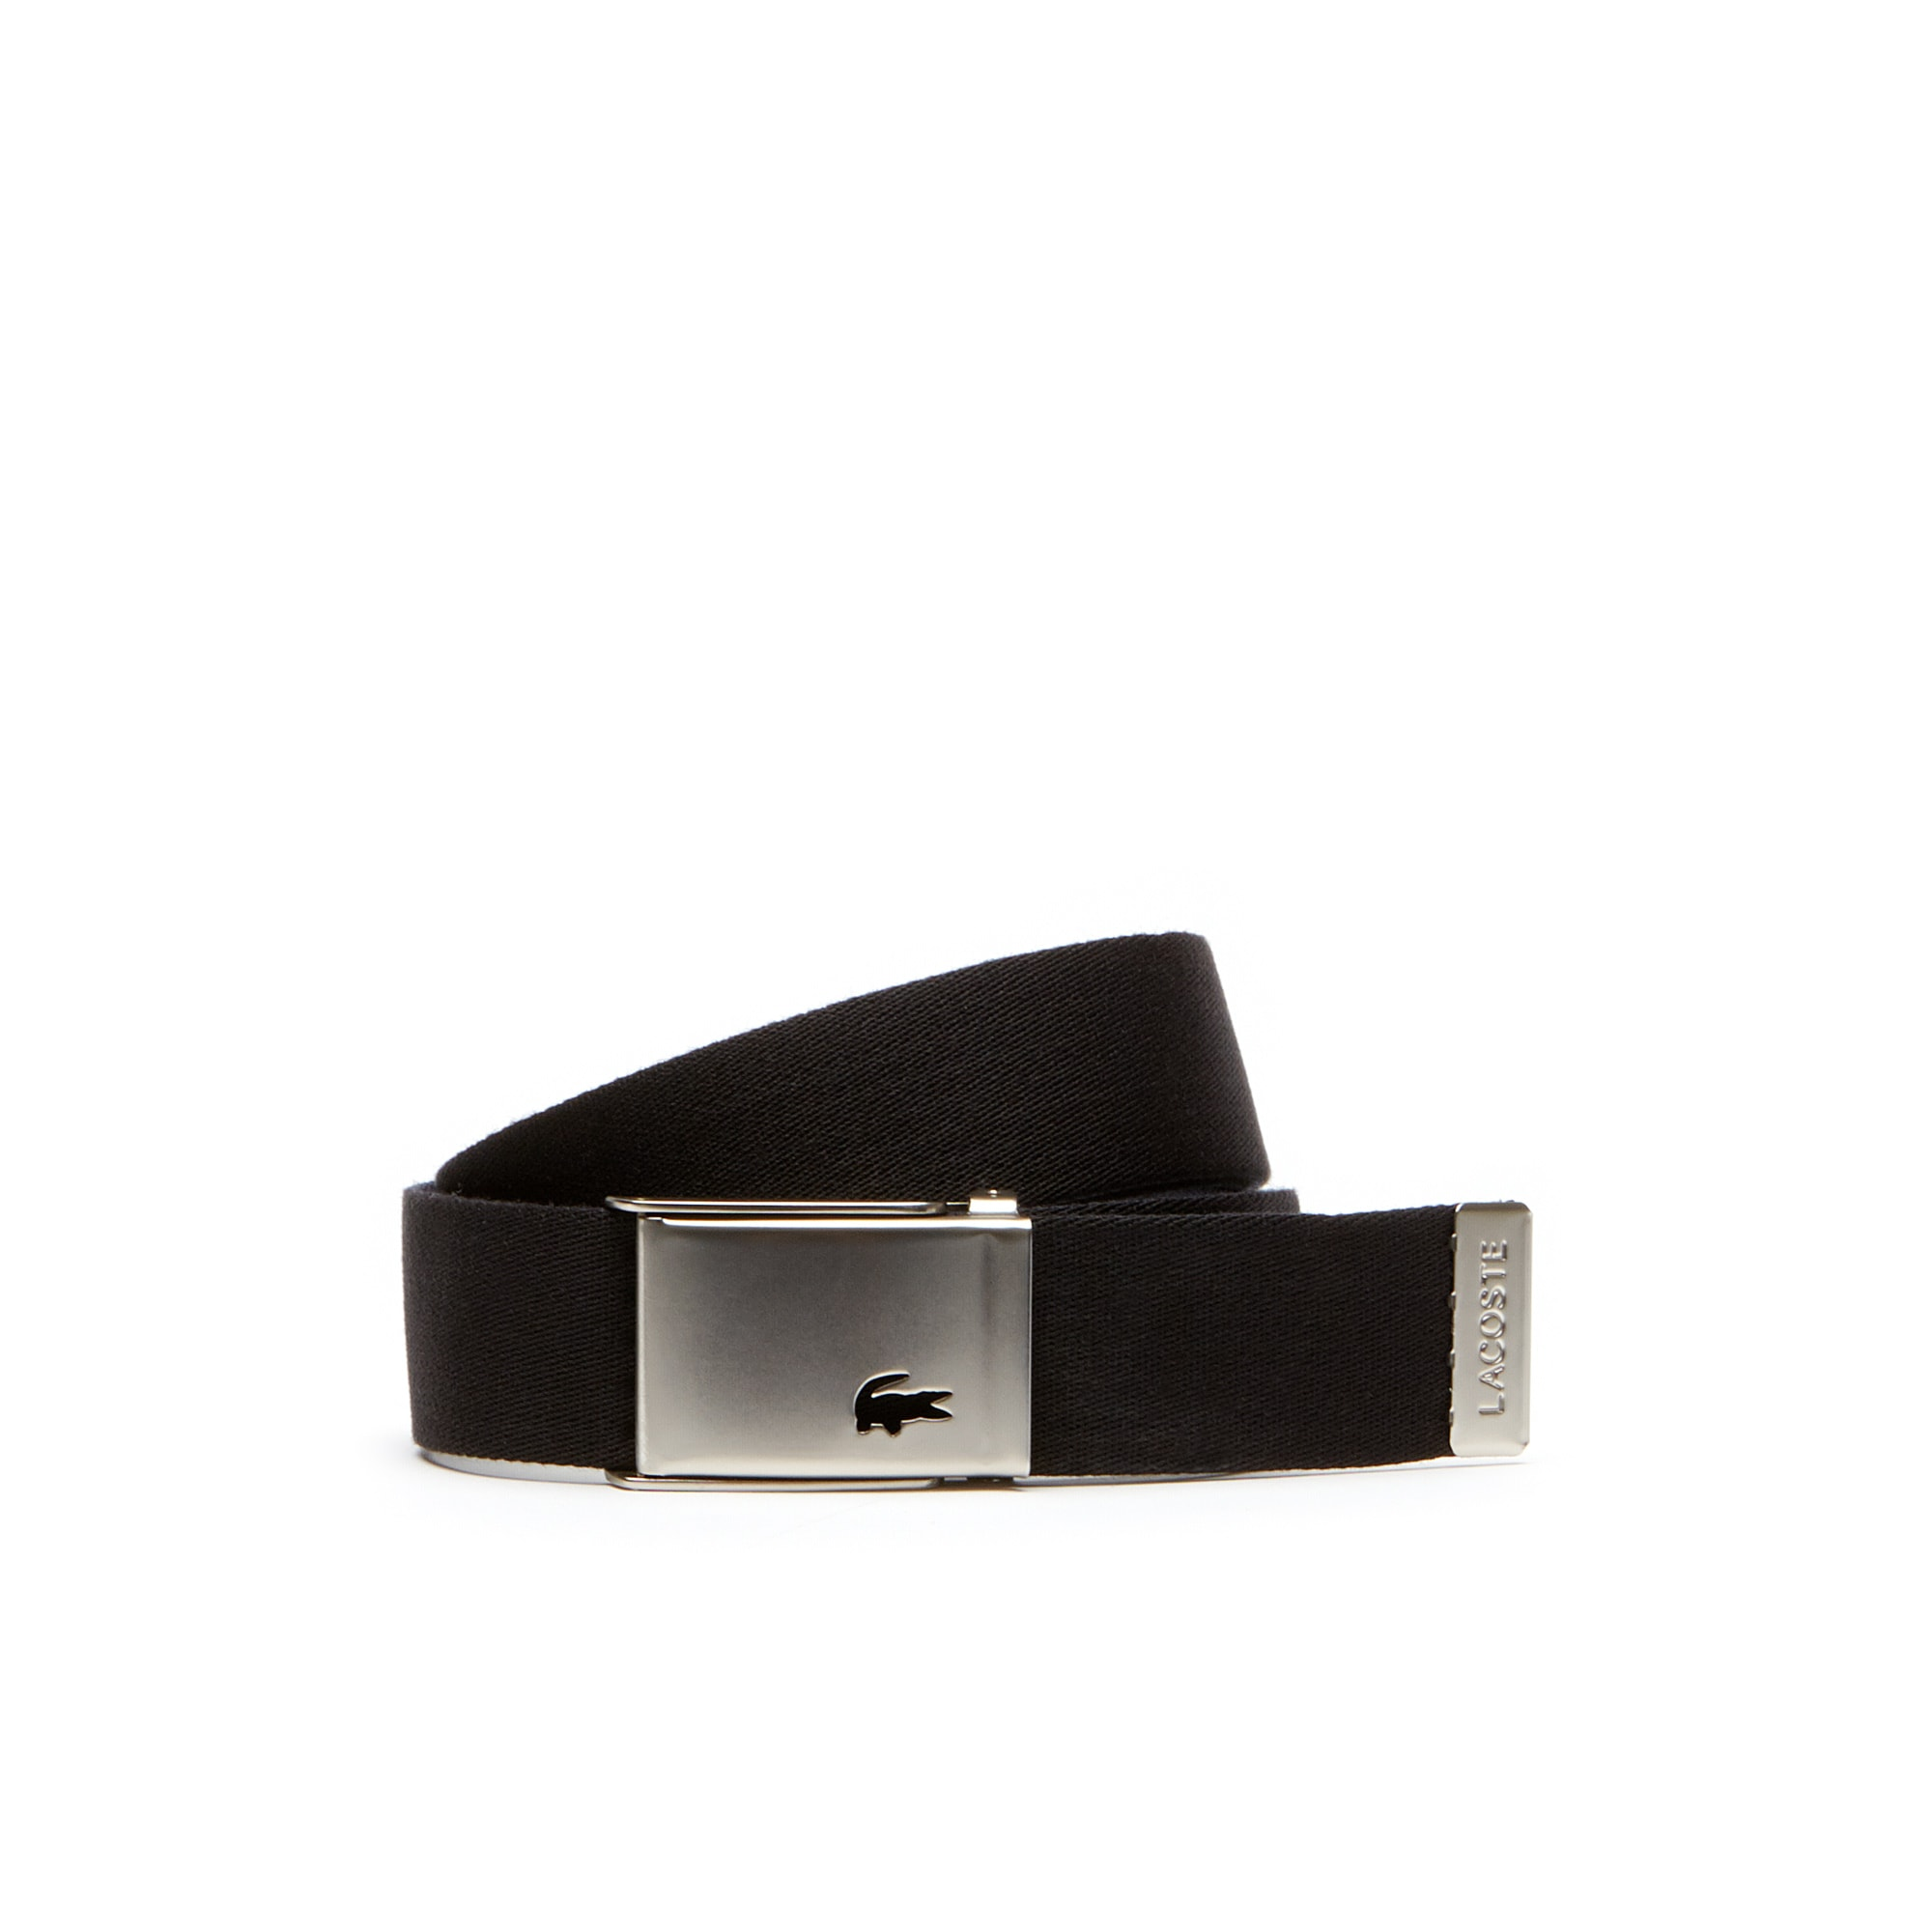 Small Leather Goods - Belts List TQuUbg55